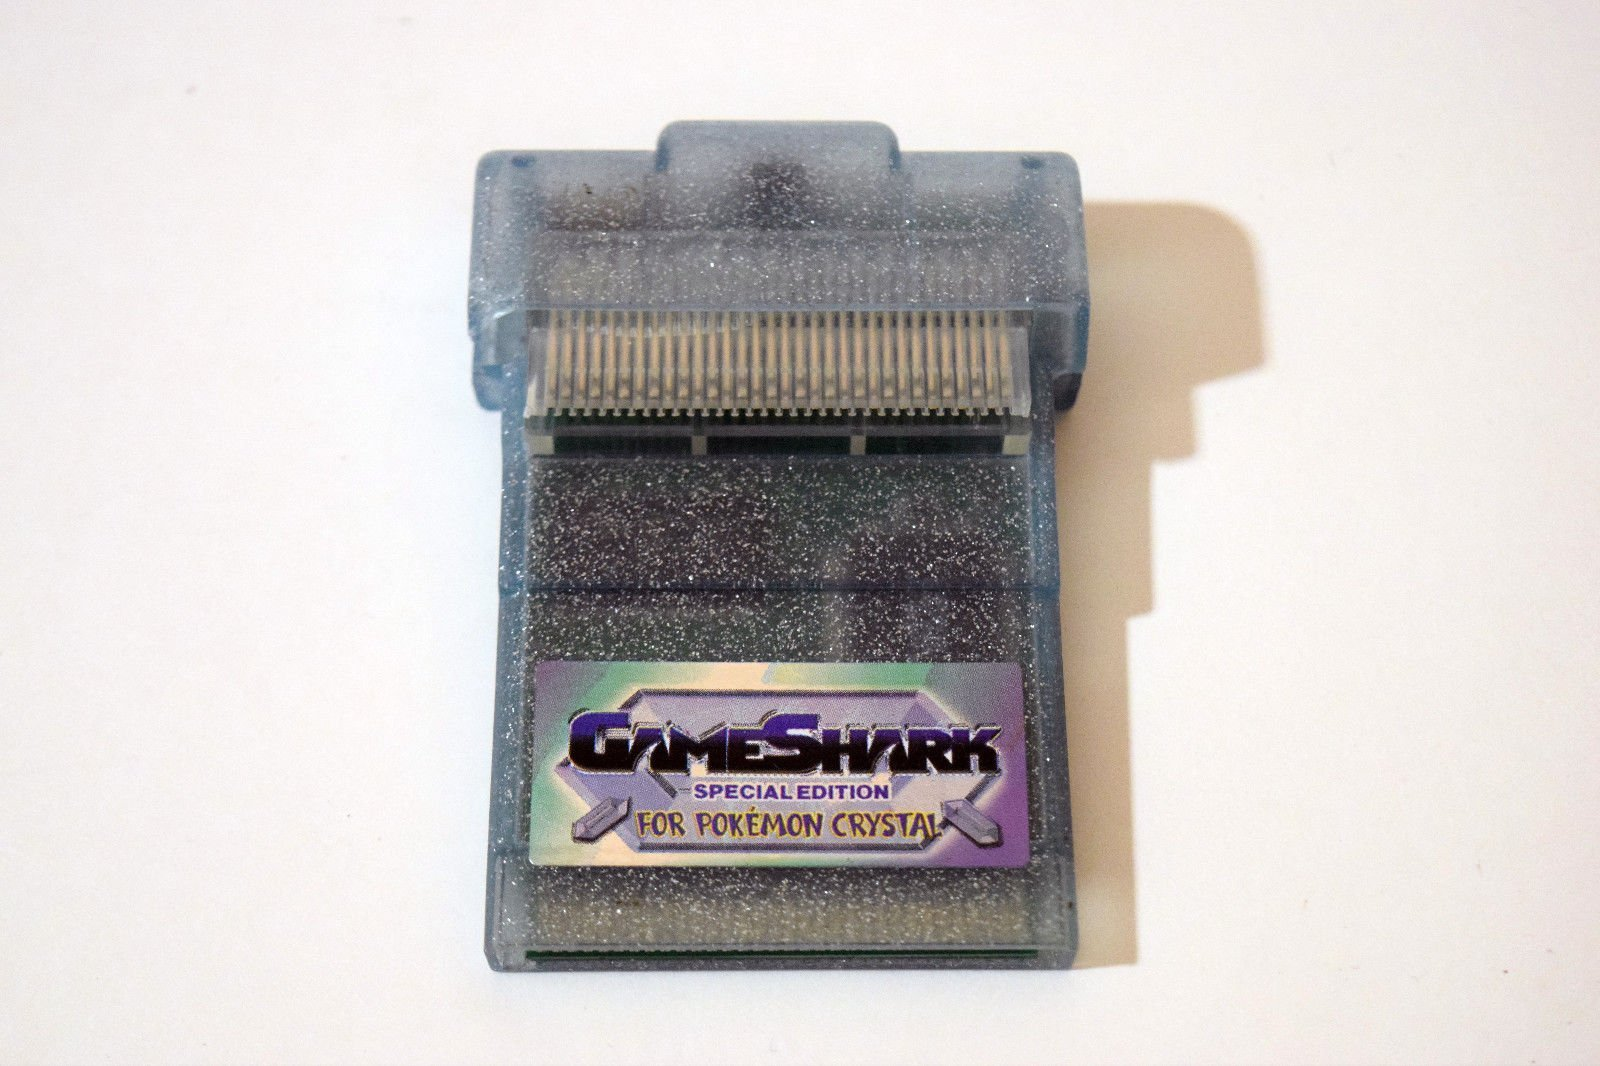 Game boy color game genie codes - Image Unavailable Image Not Available For Color Gameshark Special Edition Pokemon Crystal Game Boy Color